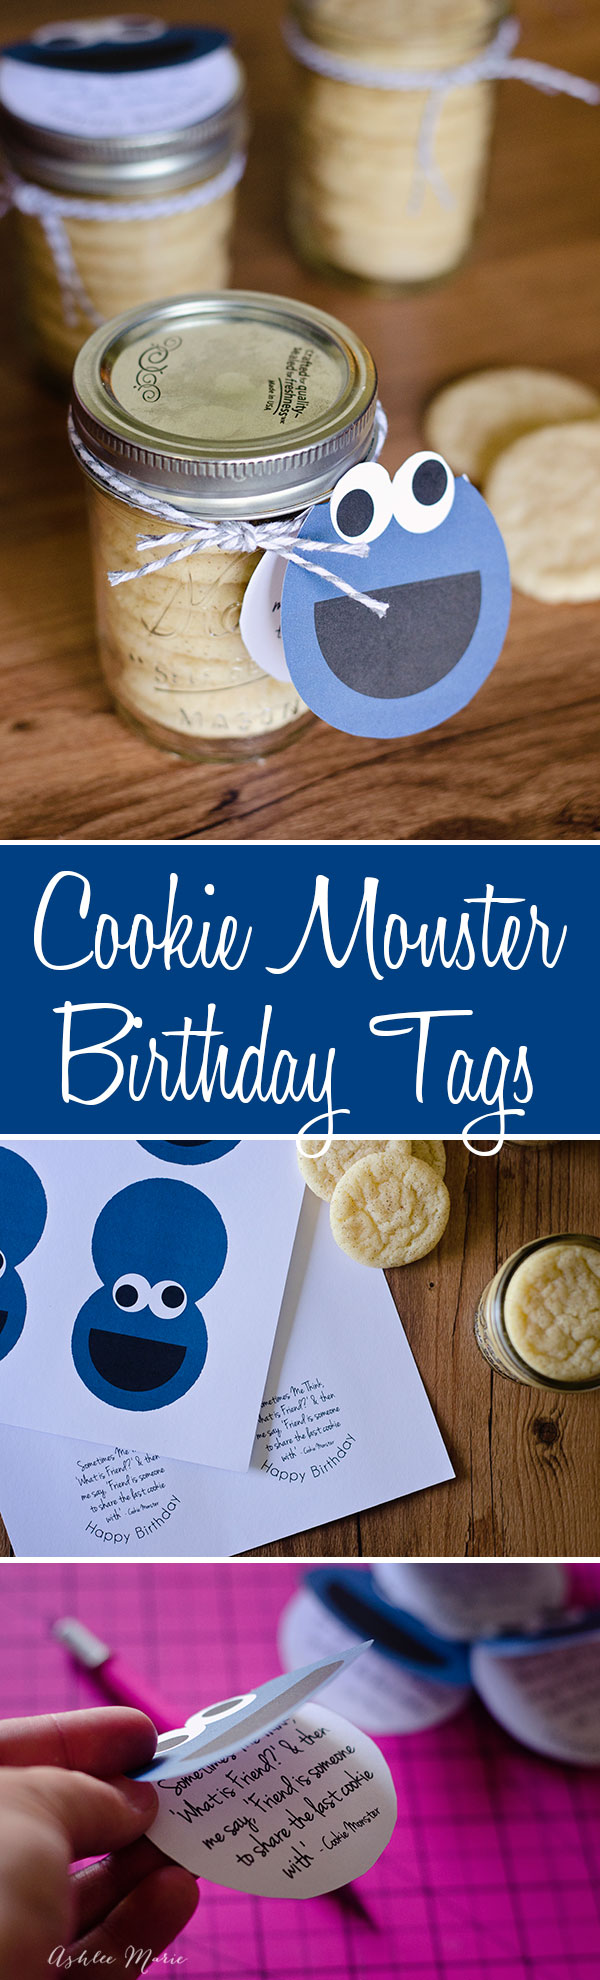 a cookie monster gift tag that you can add to cookies to give to a friend on their birthday